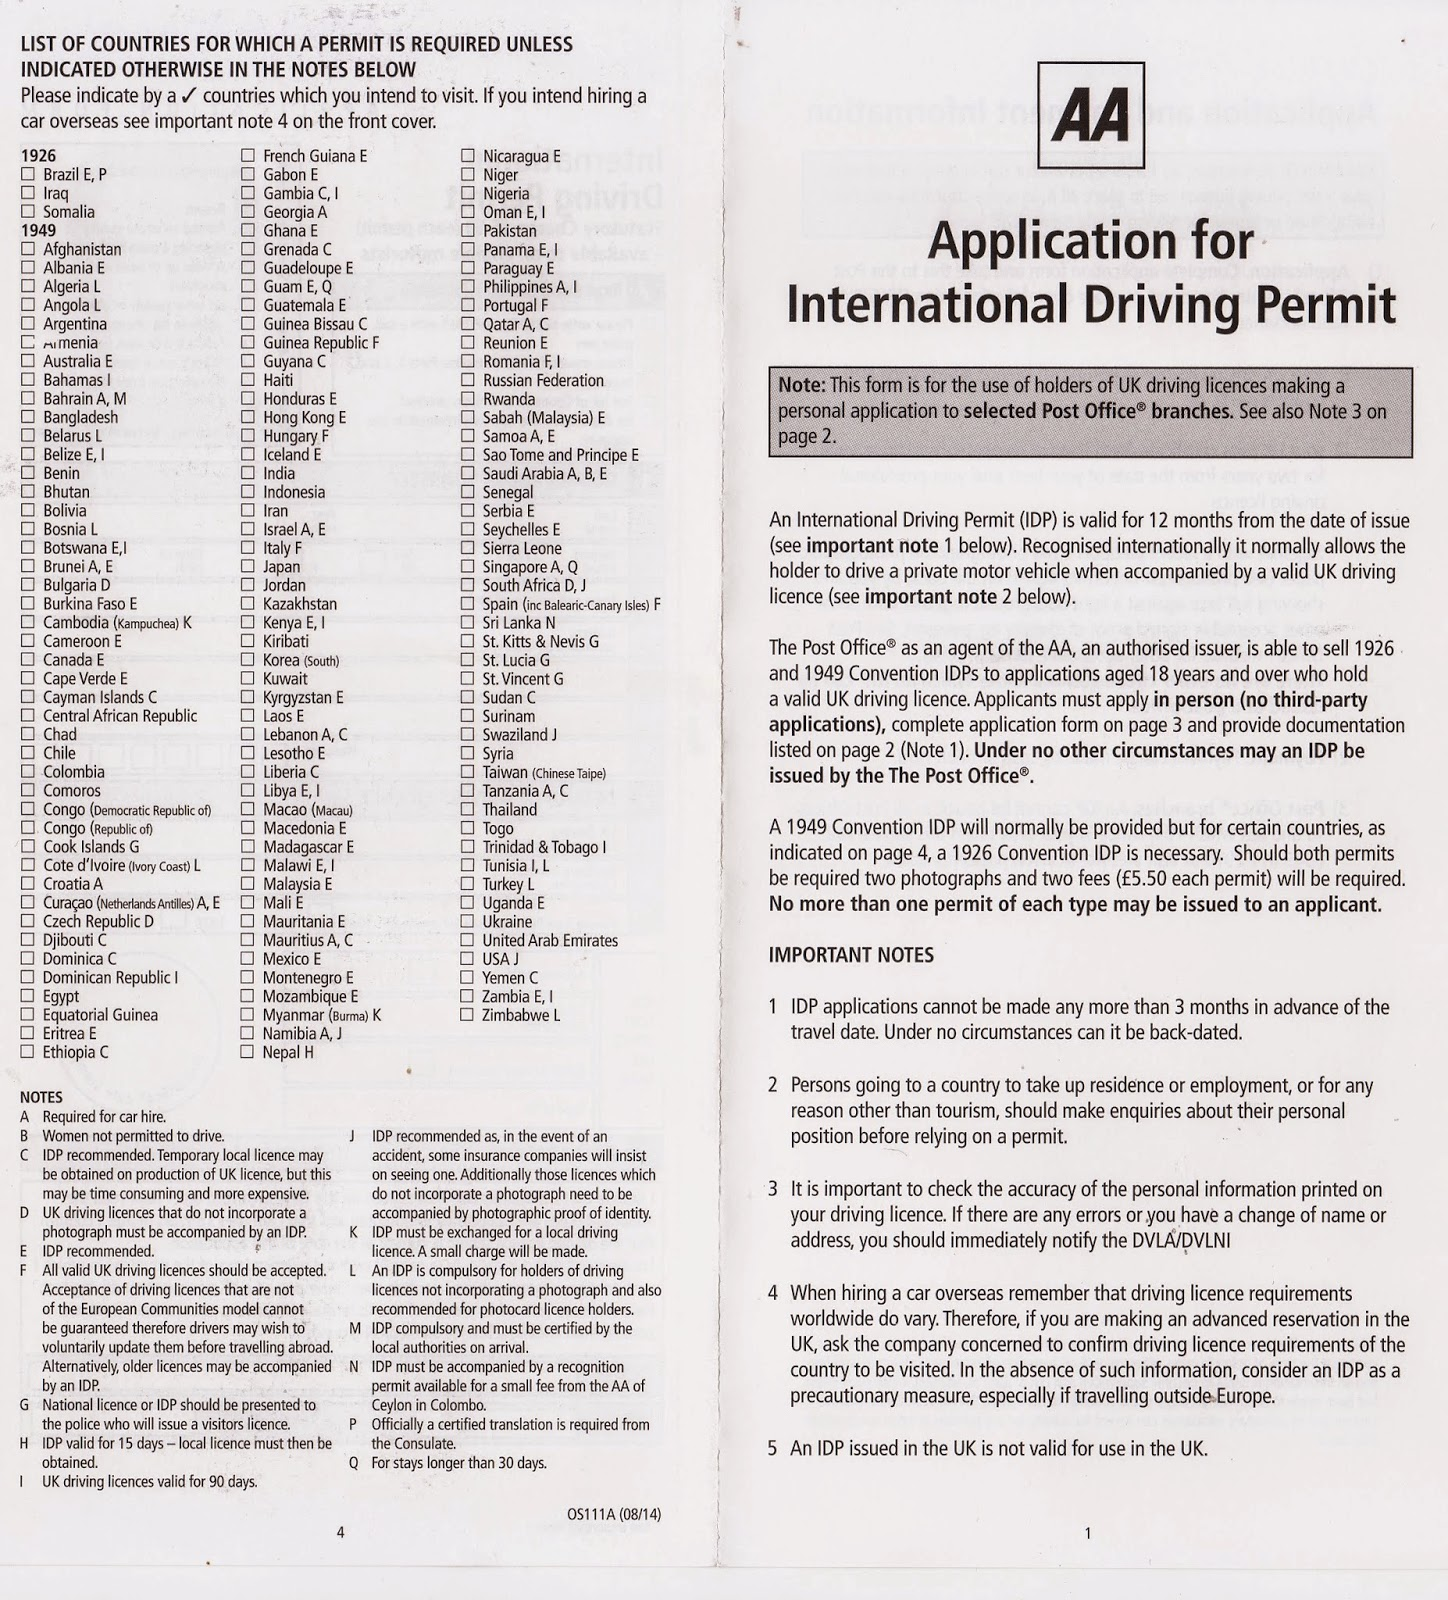 Post Office Application Form For International Driving Permit